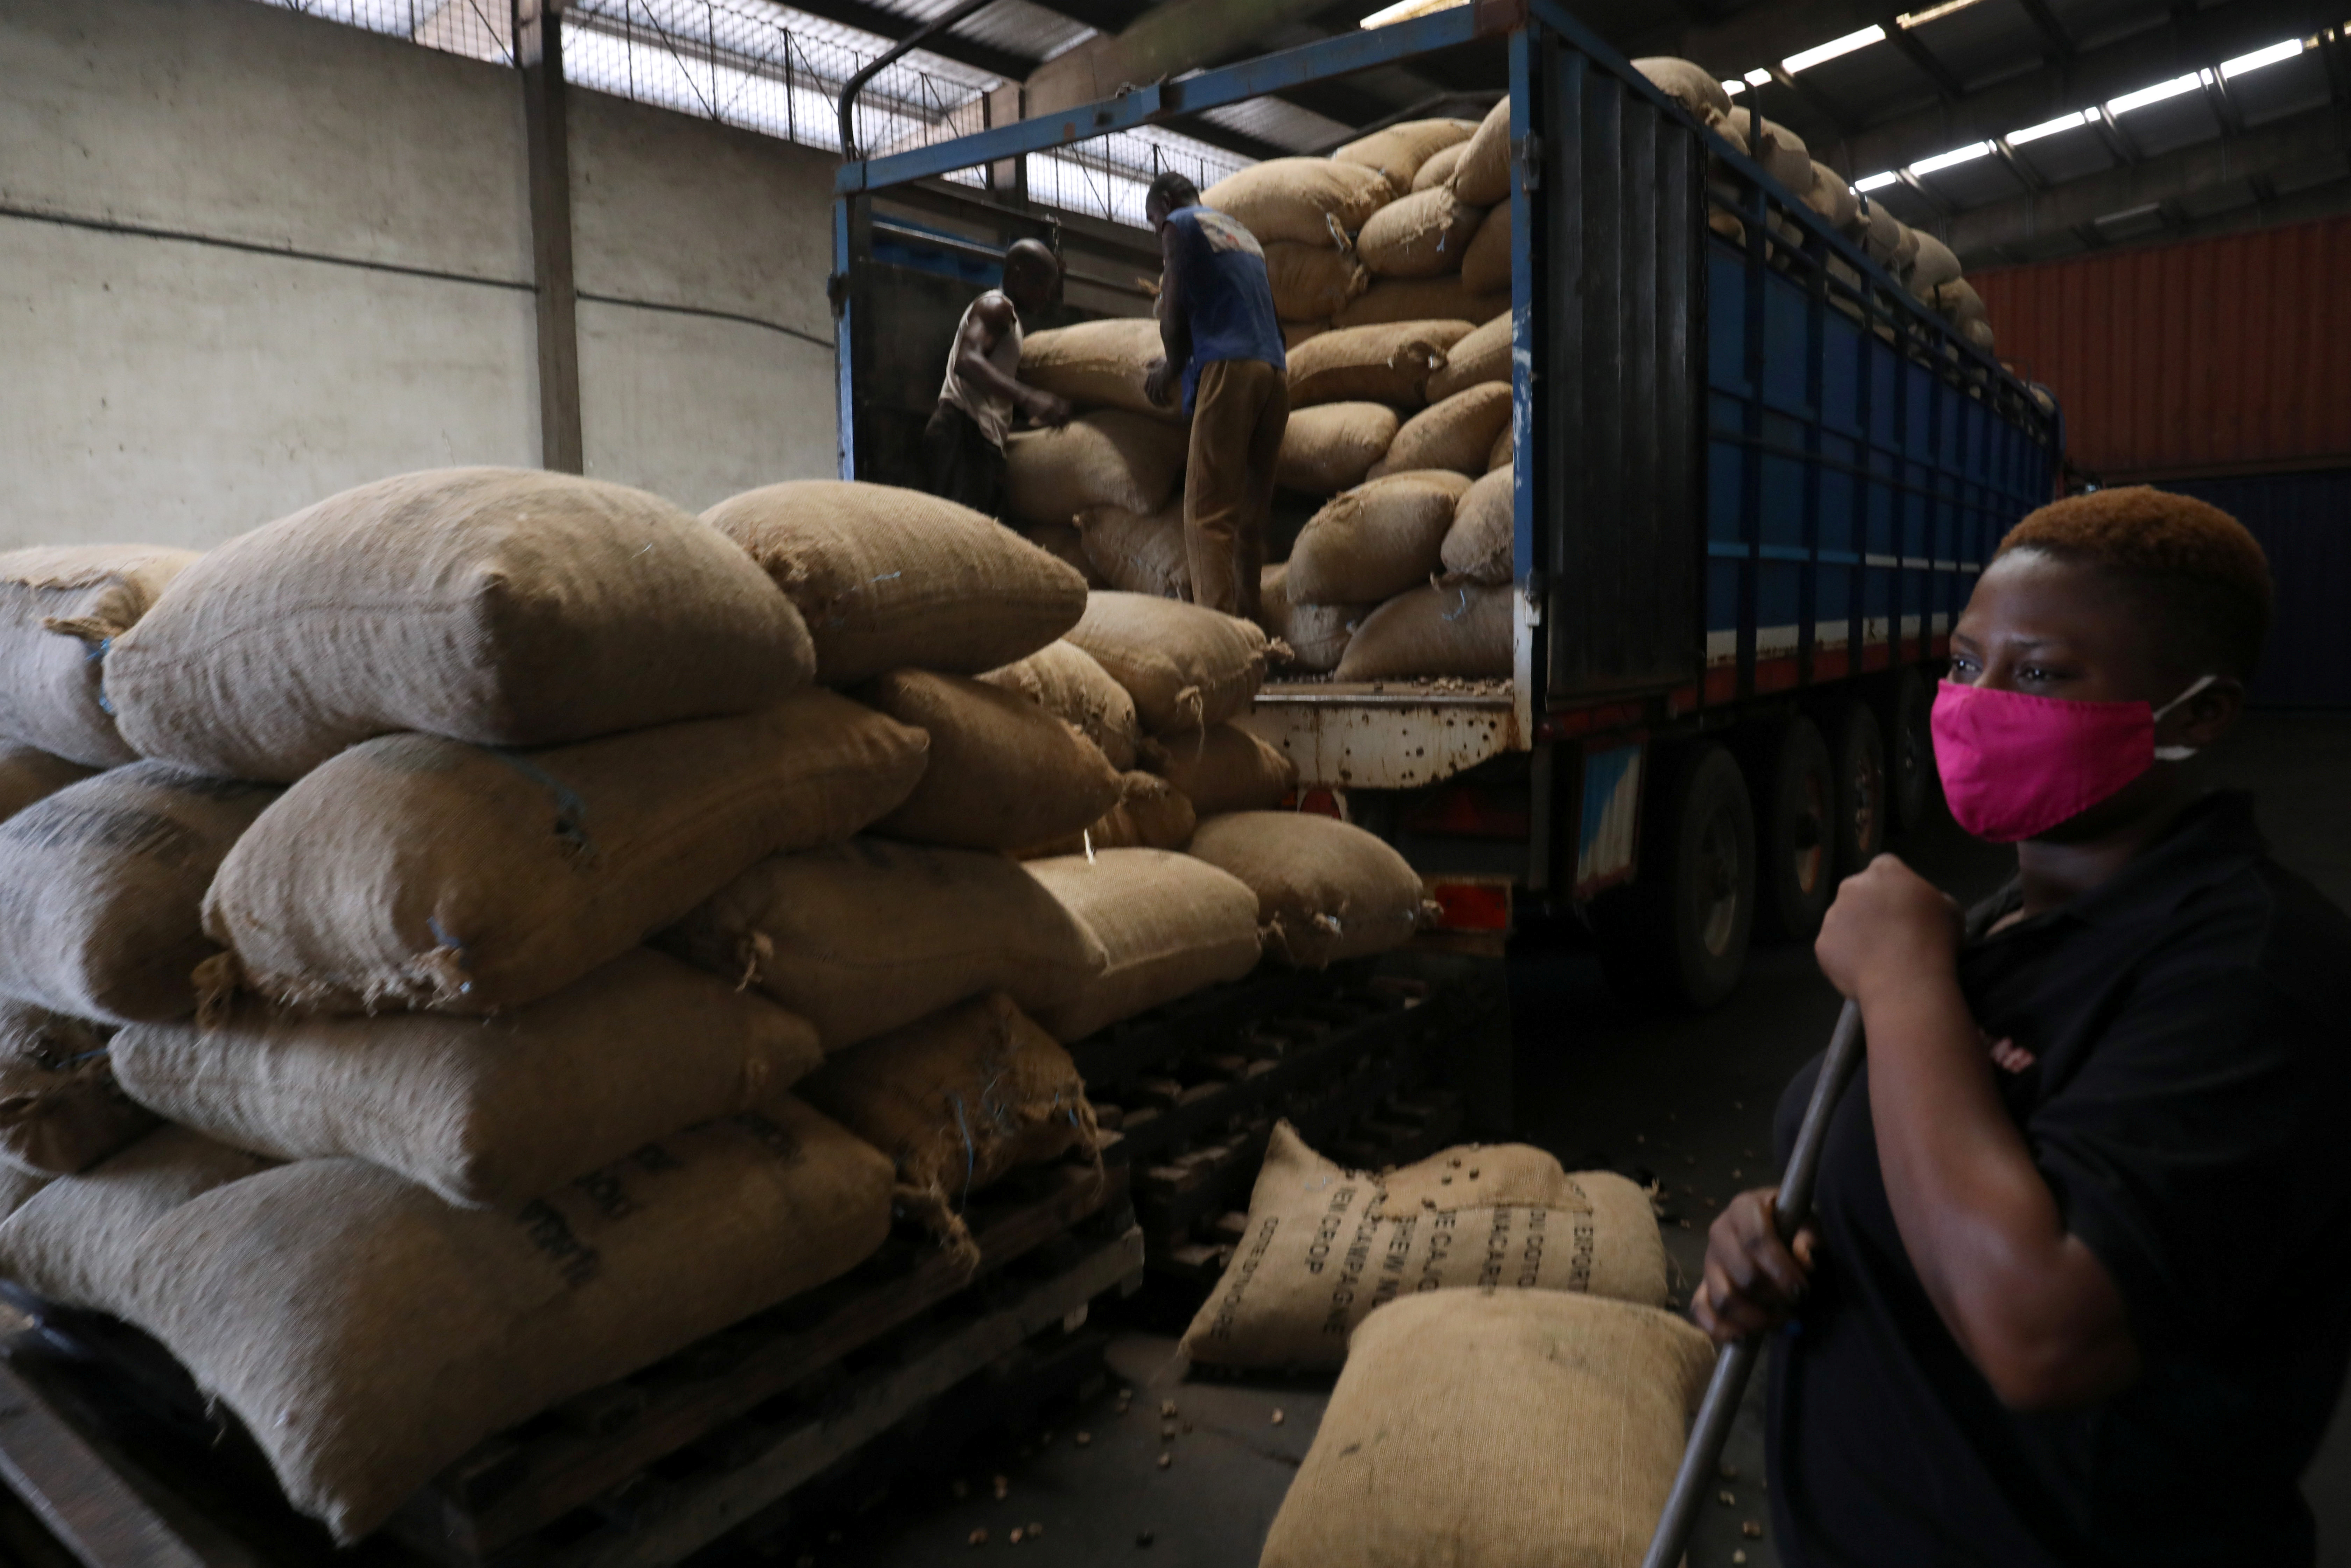 People work at a cashew nut warehouse, amid the global coronavirus disease (COVID-19) outbreak, in Abidjan, Ivory Coast May 13, 2020. Picture taken May 13, 2020. REUTERS/Luc Gnago - RC2J7H9YDQM1